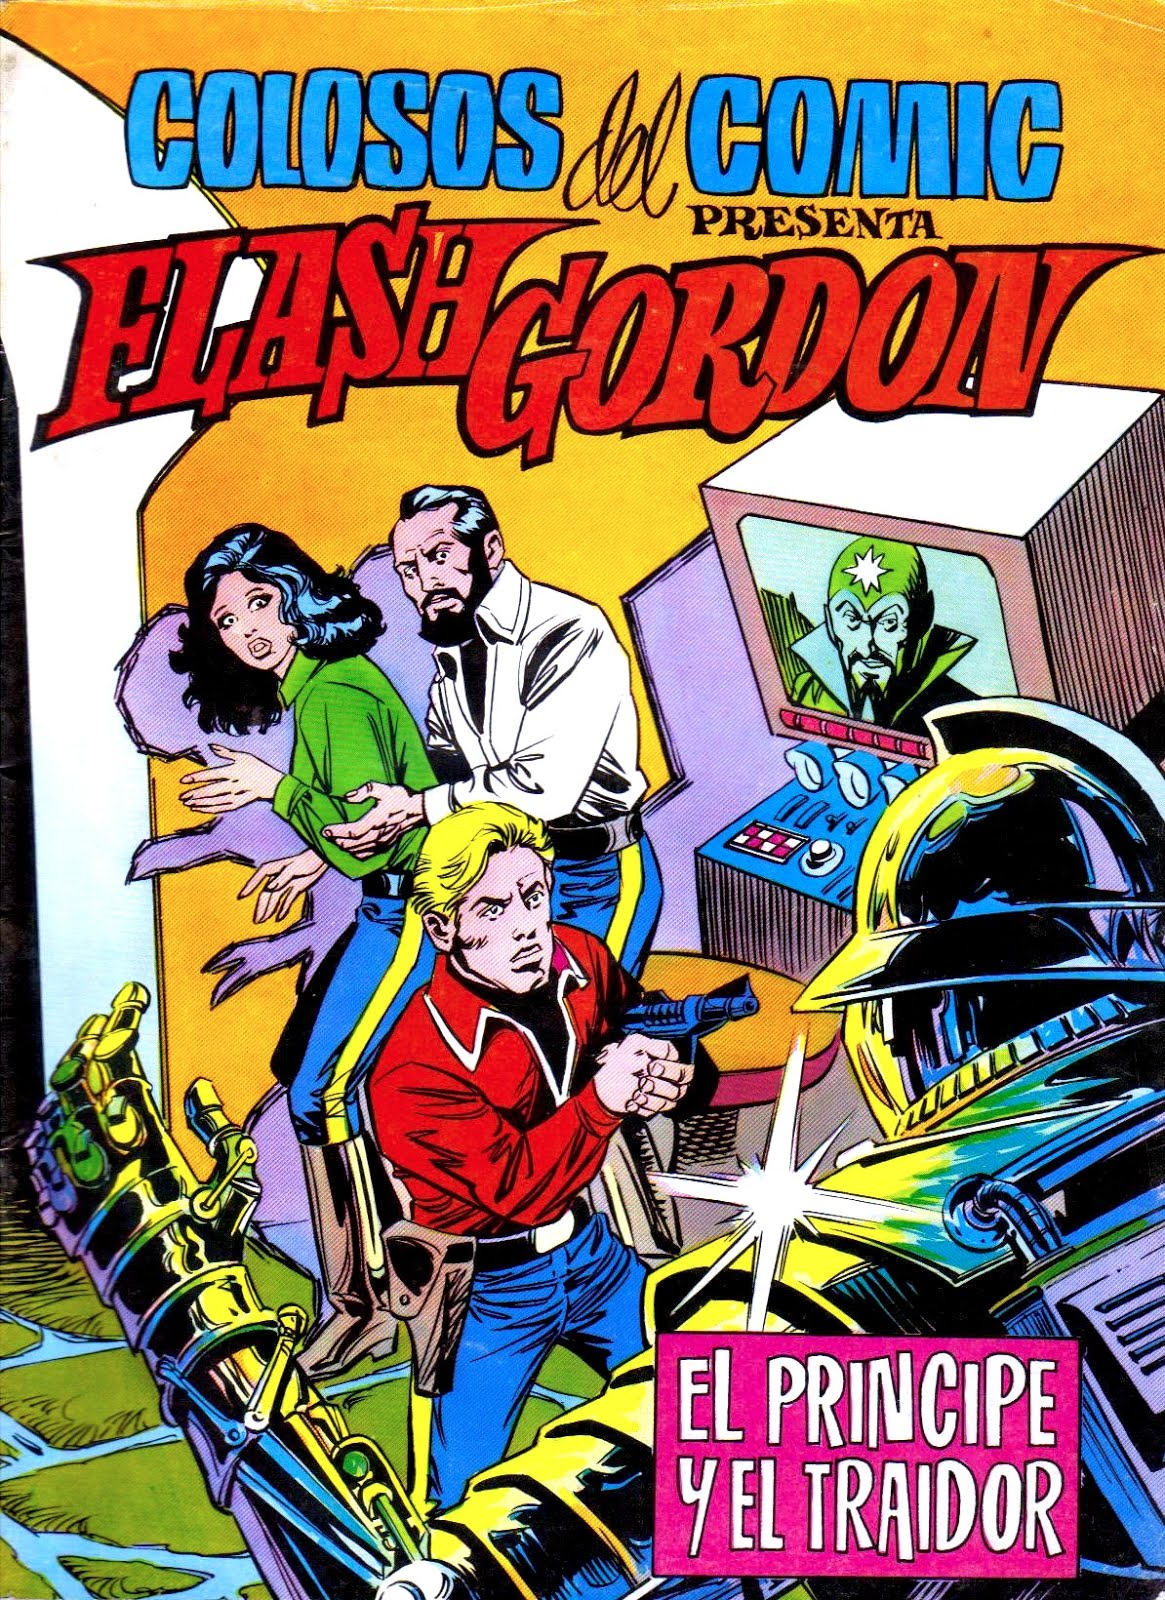 FLASH GORDON (COLOSOS DEL COMIC) 01-10  Ed. VALENCIANA  -  Arreglos de JMG